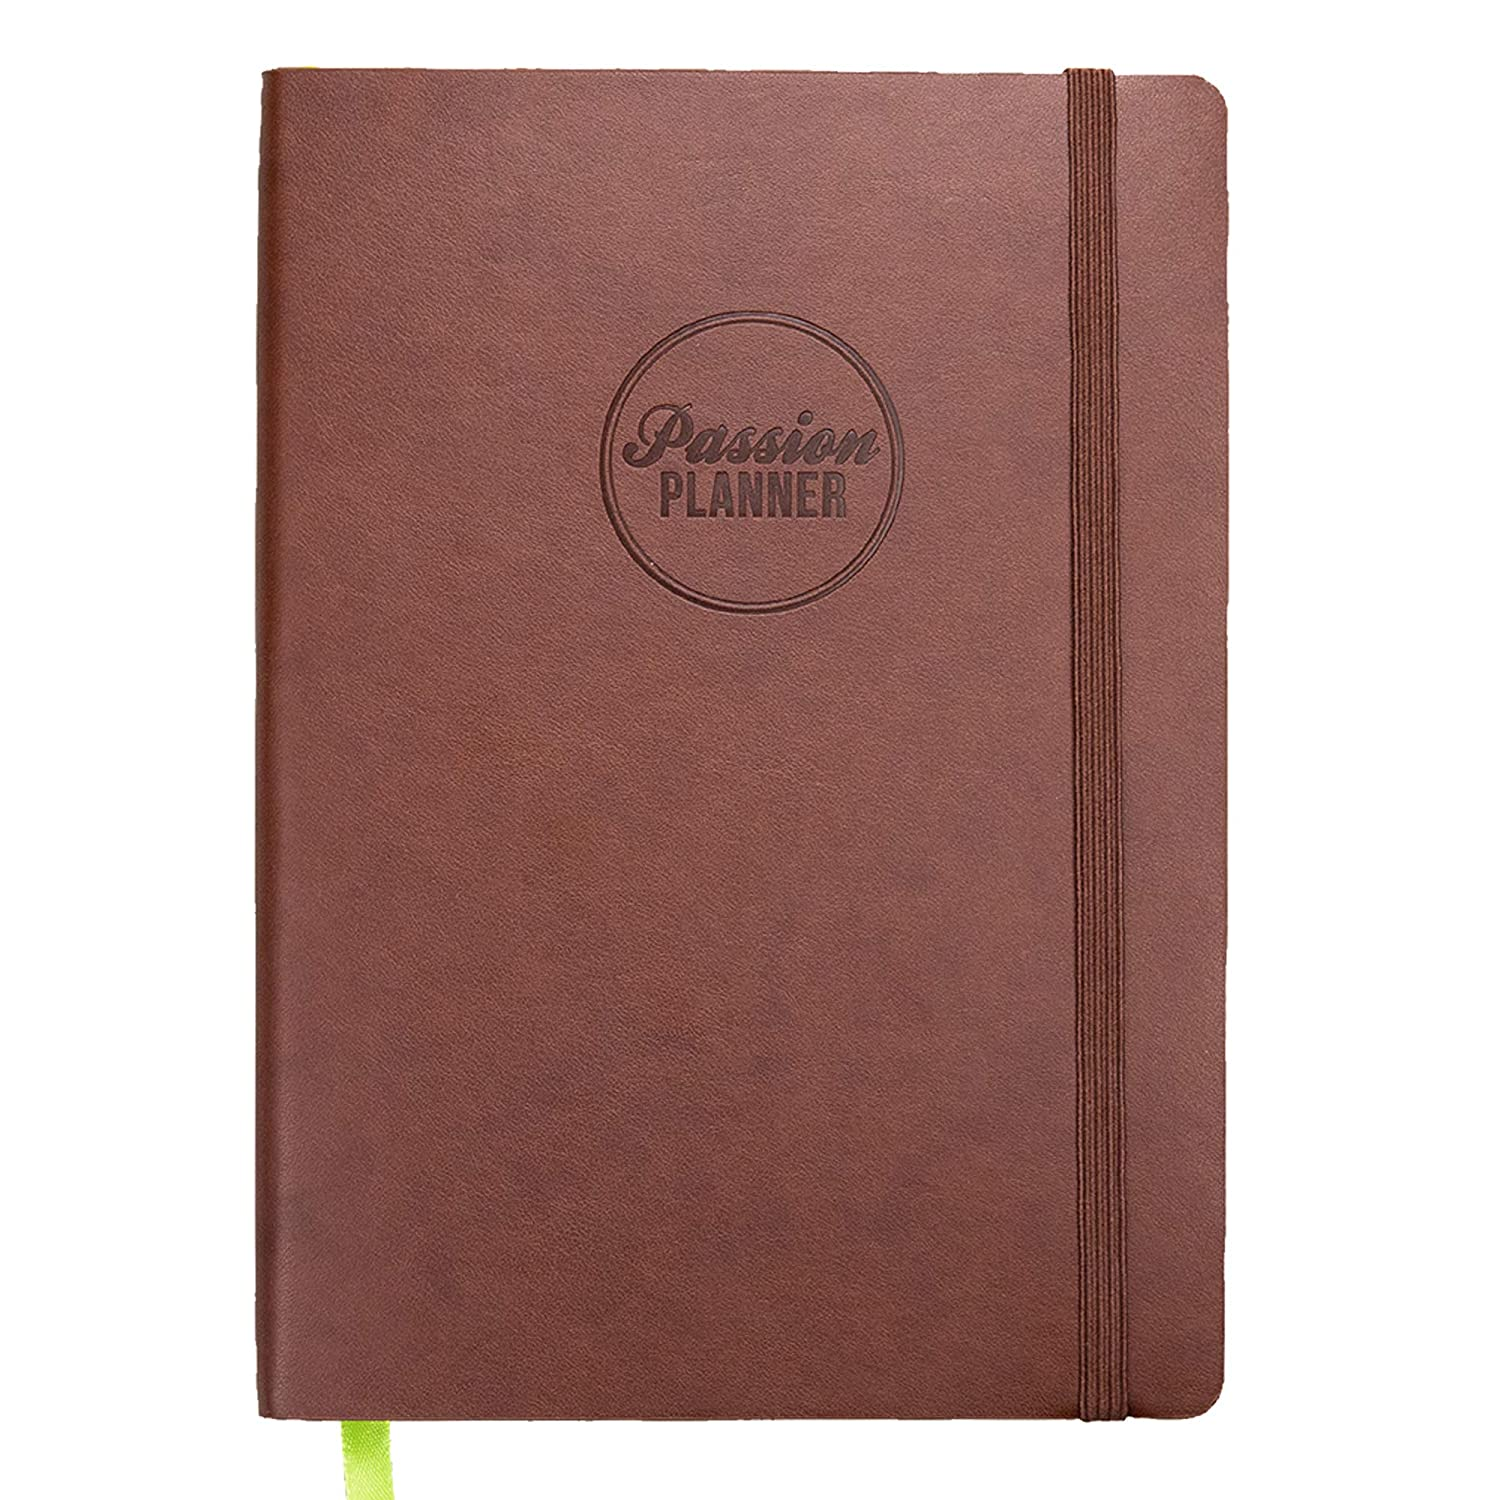 Academic Passion Planner Medium Aug 2019 - Jul 2020 - Goal Oriented Weekly Agenda, Reflection Journal (B5-6.9 x 9.8 in) Monday Start (Bold Brown)